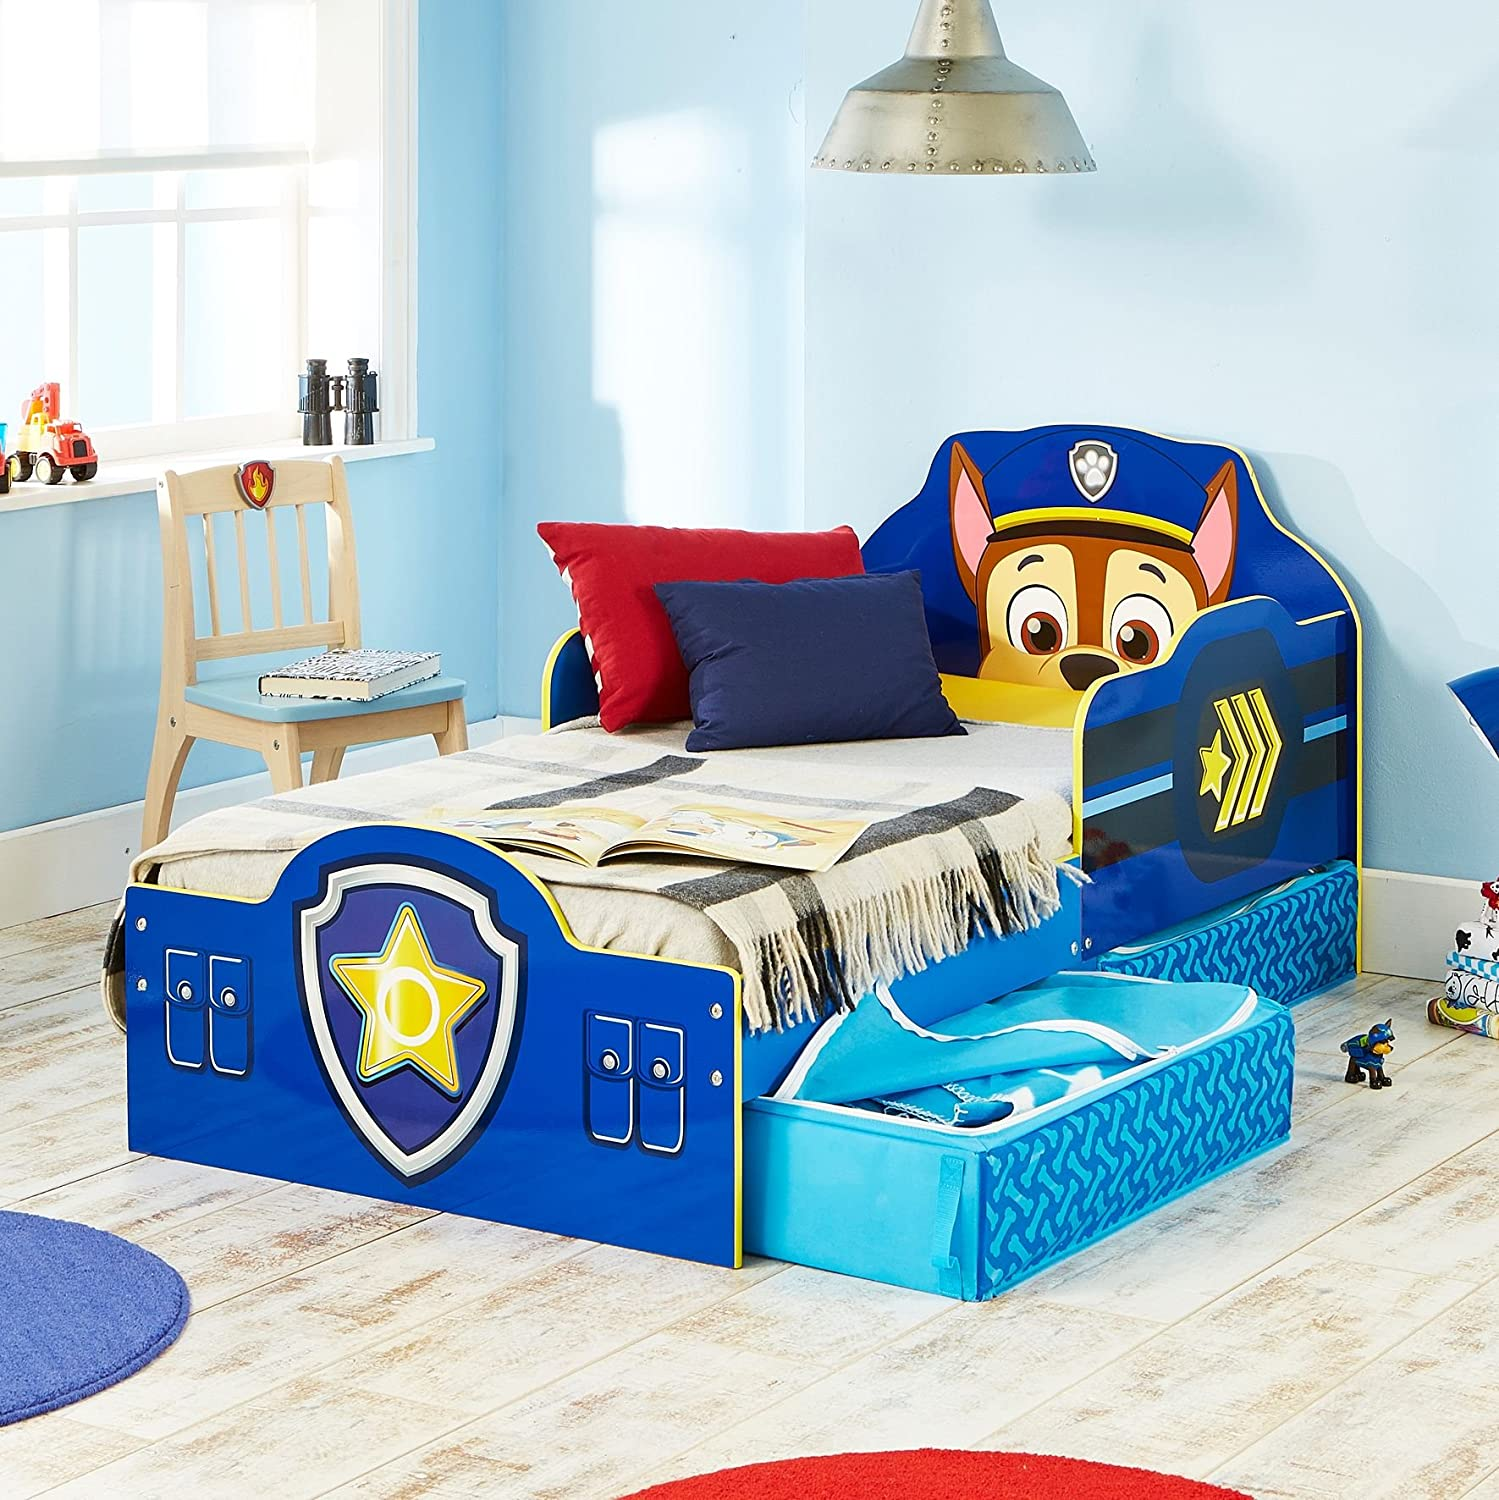 charliewestbluesfest toddler with blue designs ideas storage bed perfect